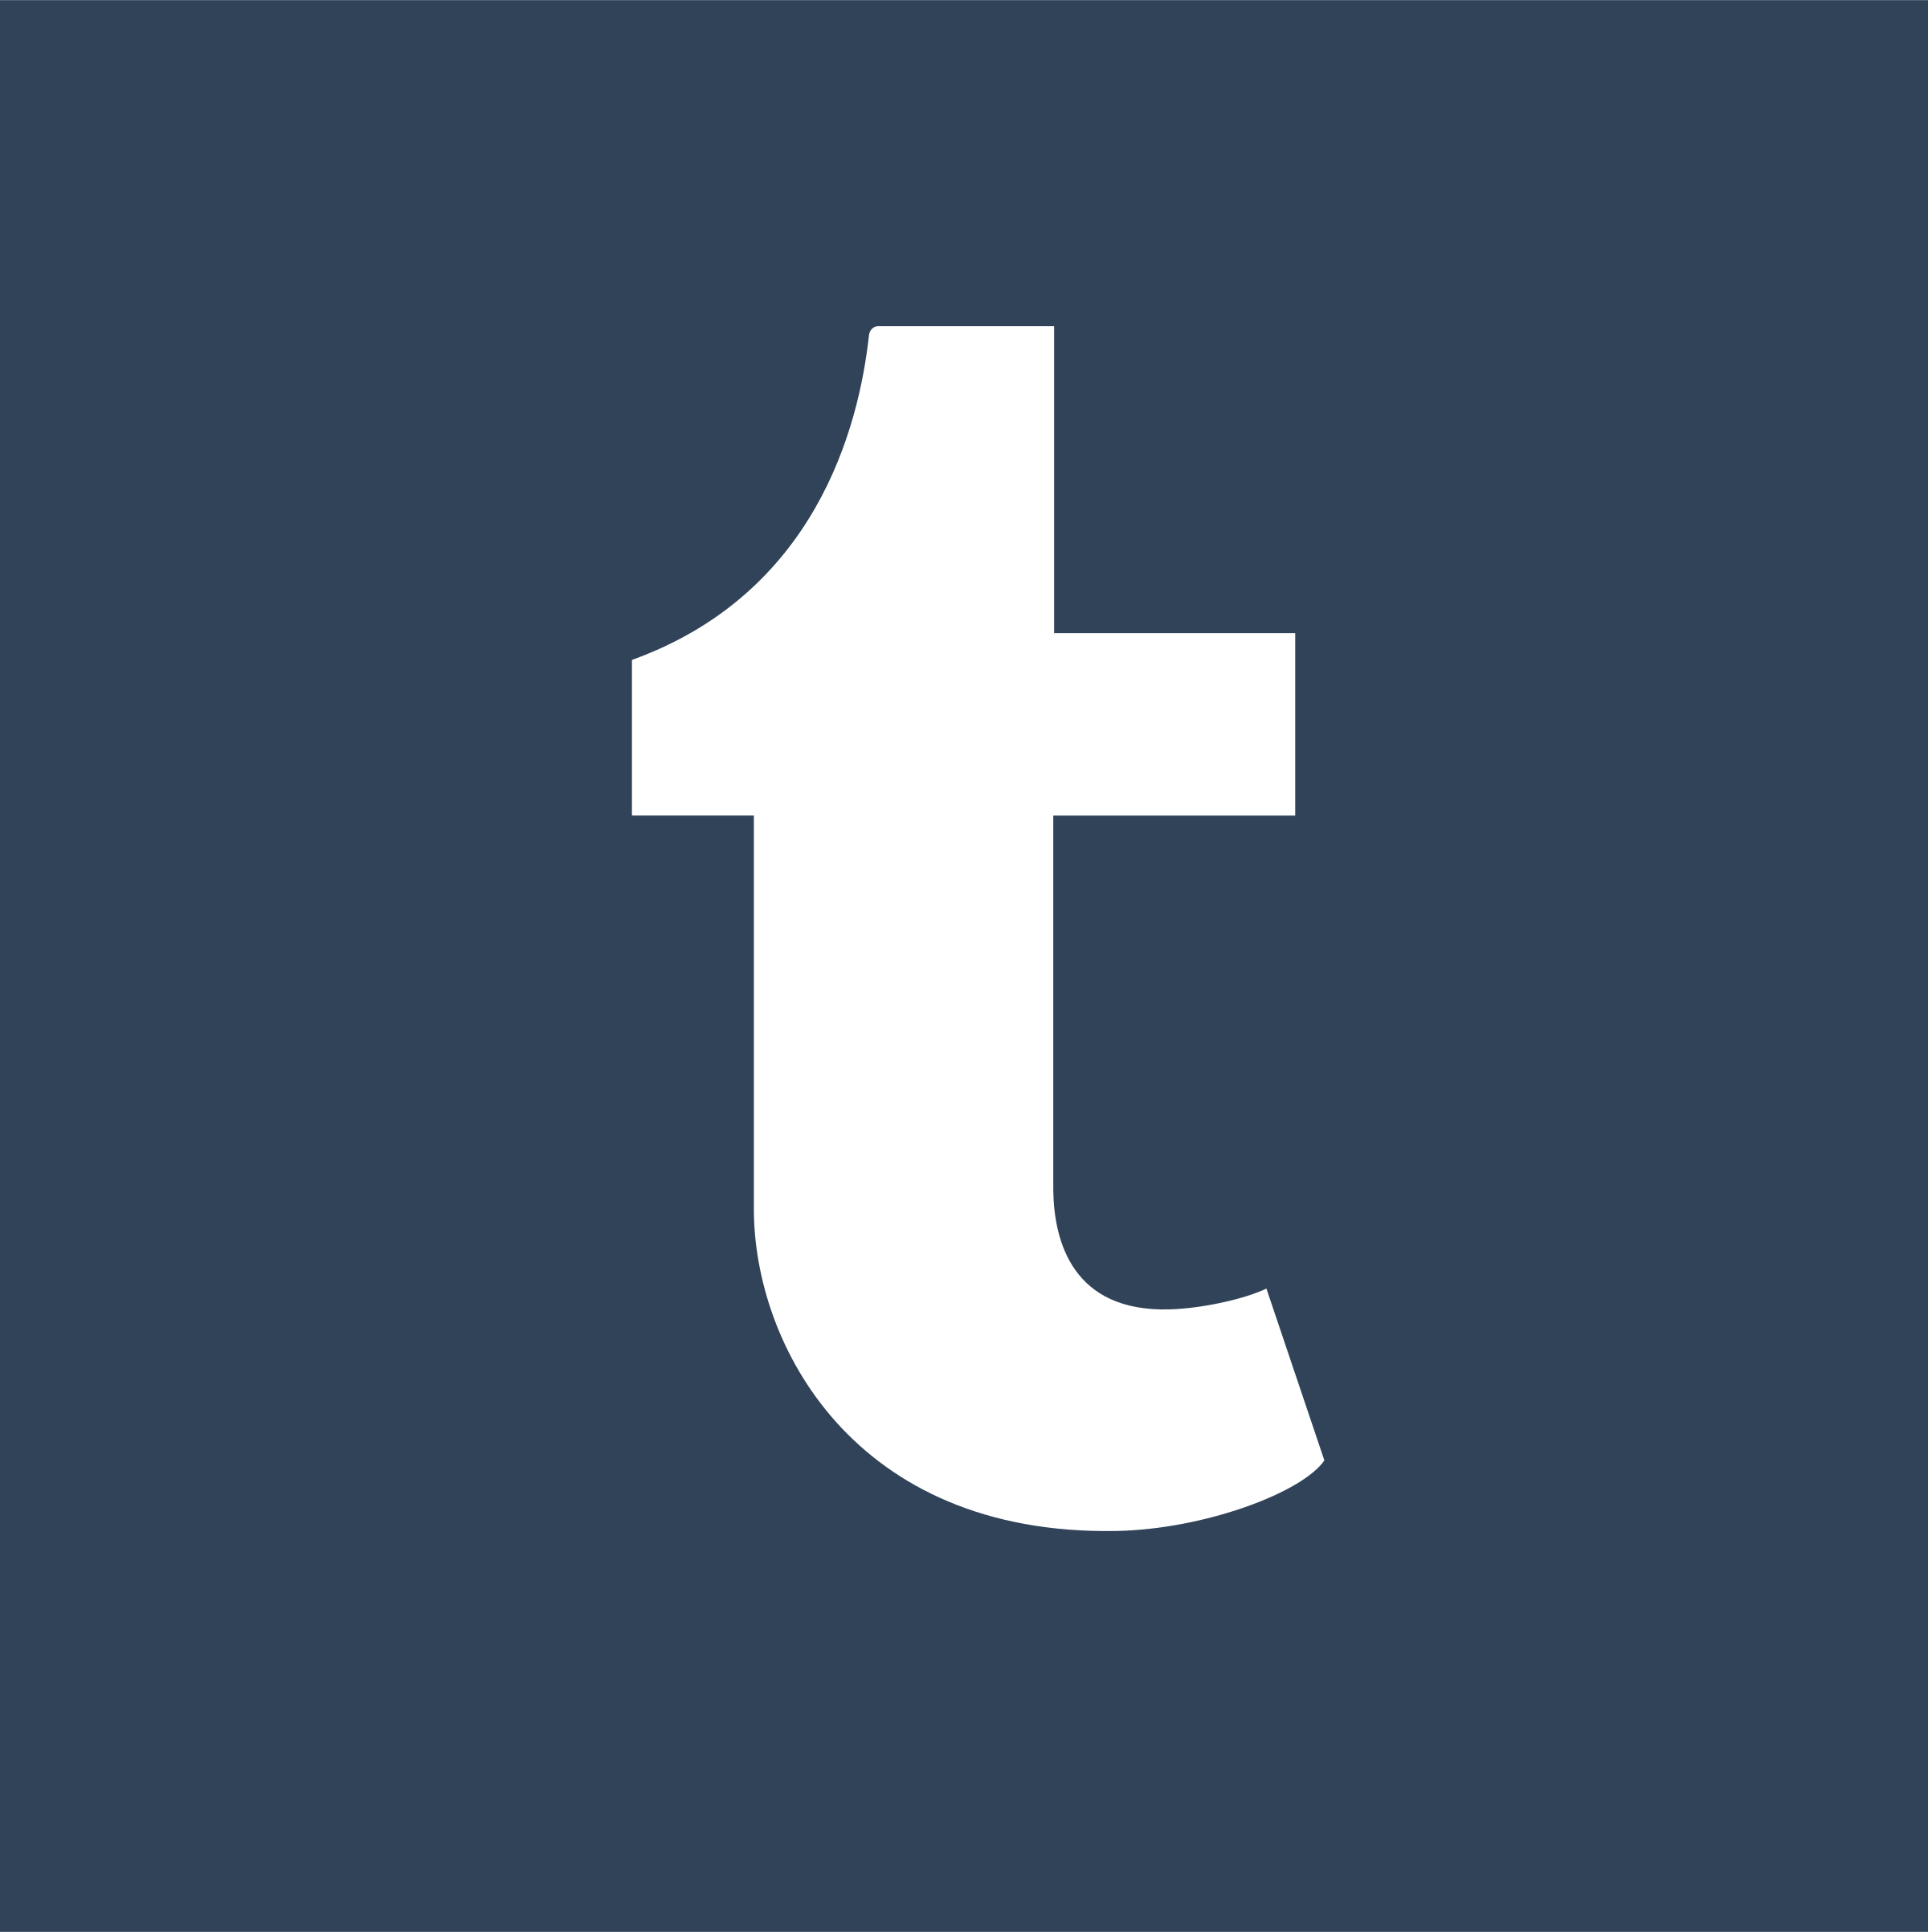 Tumblr icon Logo PNG Transparent & SVG Vector.